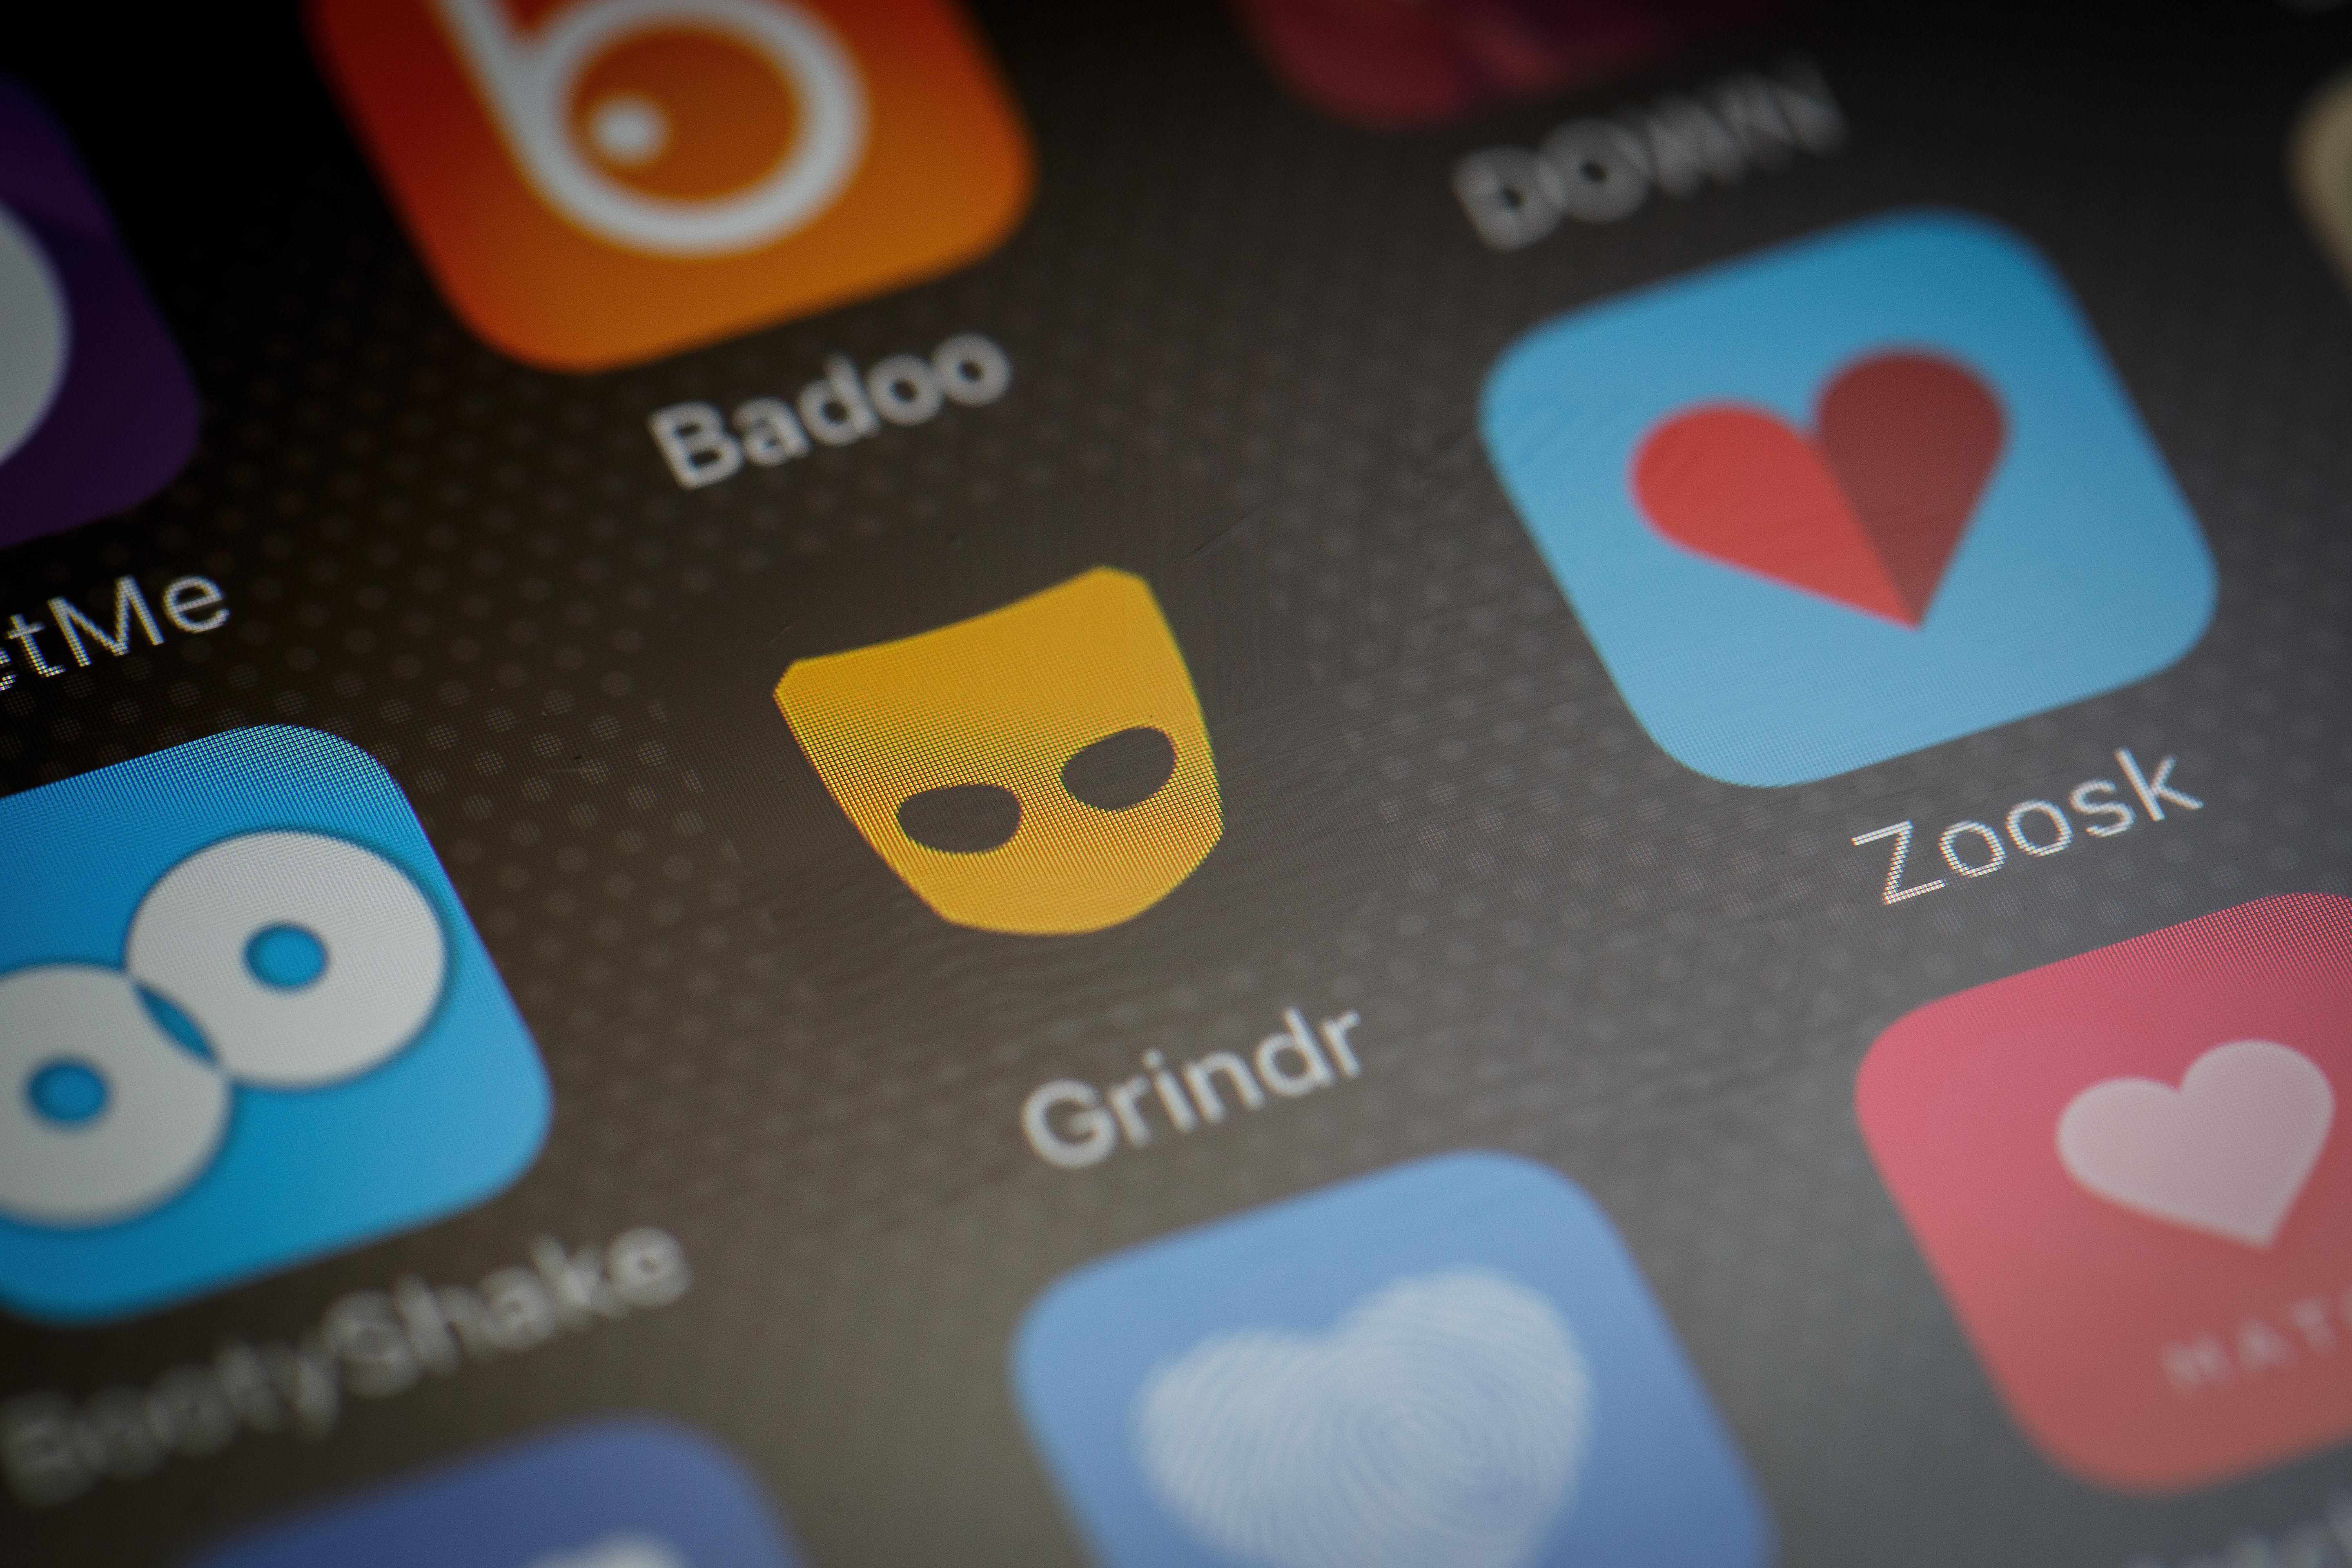 The 'Grindr' app logo is seen amongst other dating apps on a mobile phone screen.